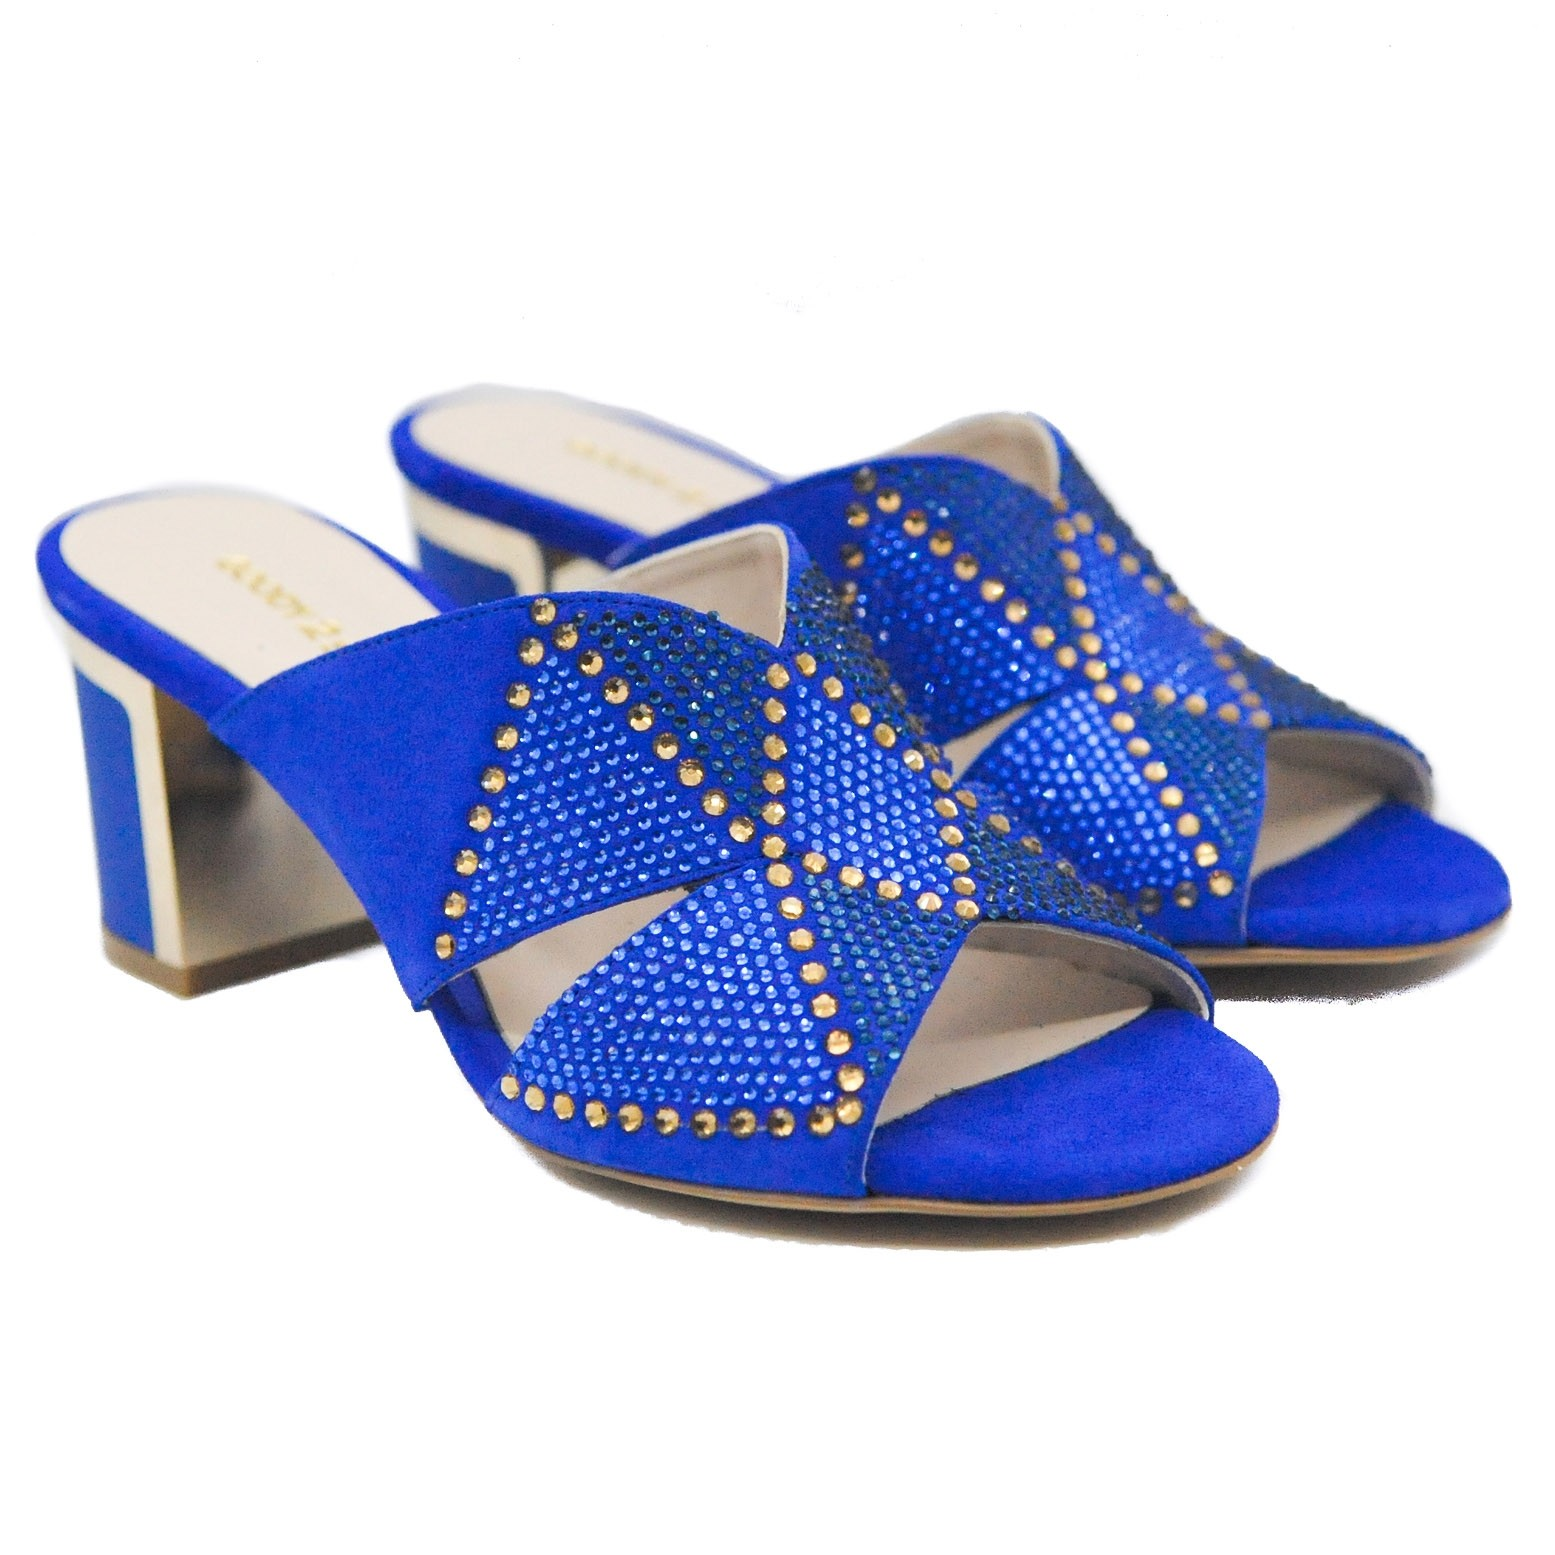 Goody2Shoes Ladies' Royal Blue Block Heel Sandals with Crossover Straps and Gems